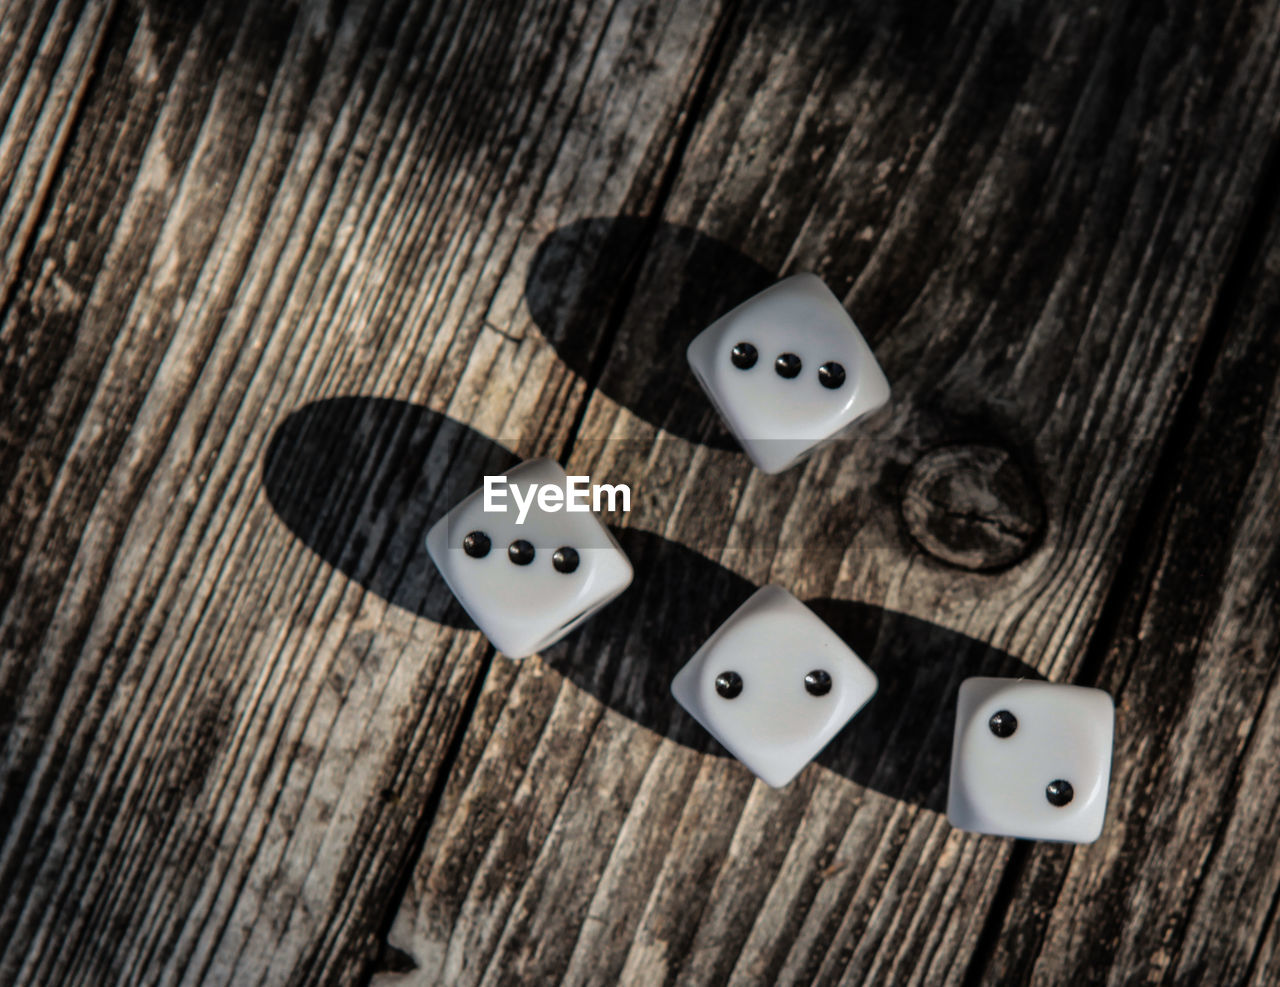 wood - material, dice, still life, high angle view, indoors, table, no people, close-up, arts culture and entertainment, leisure games, relaxation, luck, shape, opportunity, pattern, directly above, leisure activity, gambling, cube shape, spotted